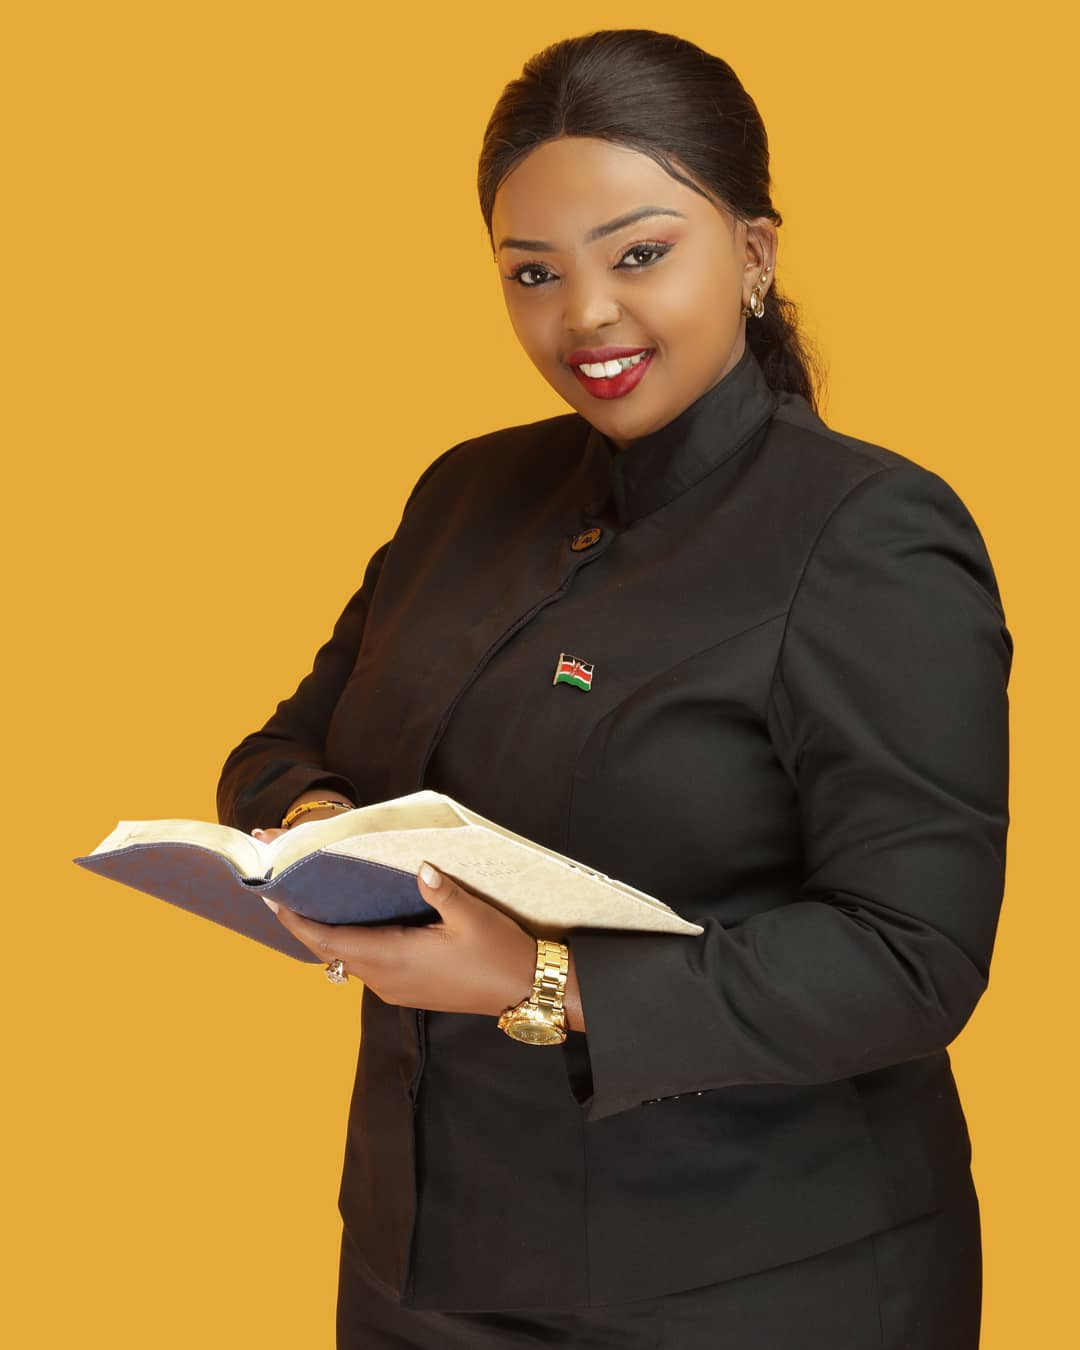 Reverend Lucy Natasha - Who is the most attractive female celebrity in Kenya? (poll)